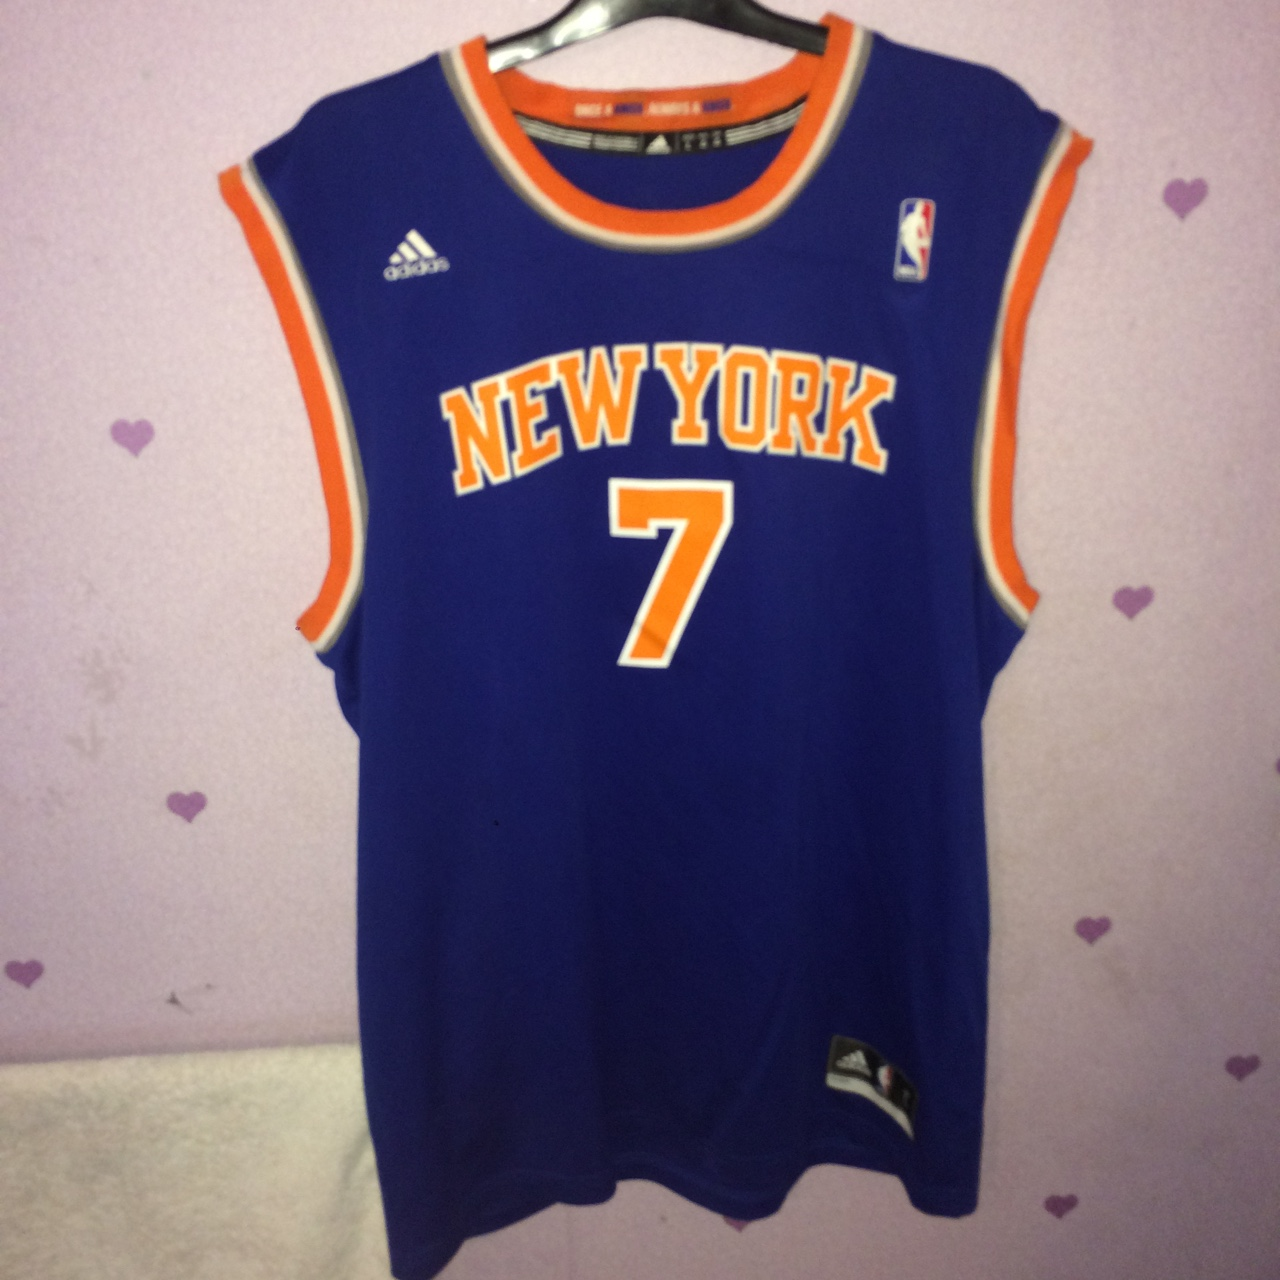 buy online f4d12 15a3d Official authentic New York knicks jersey, no.7... - Depop